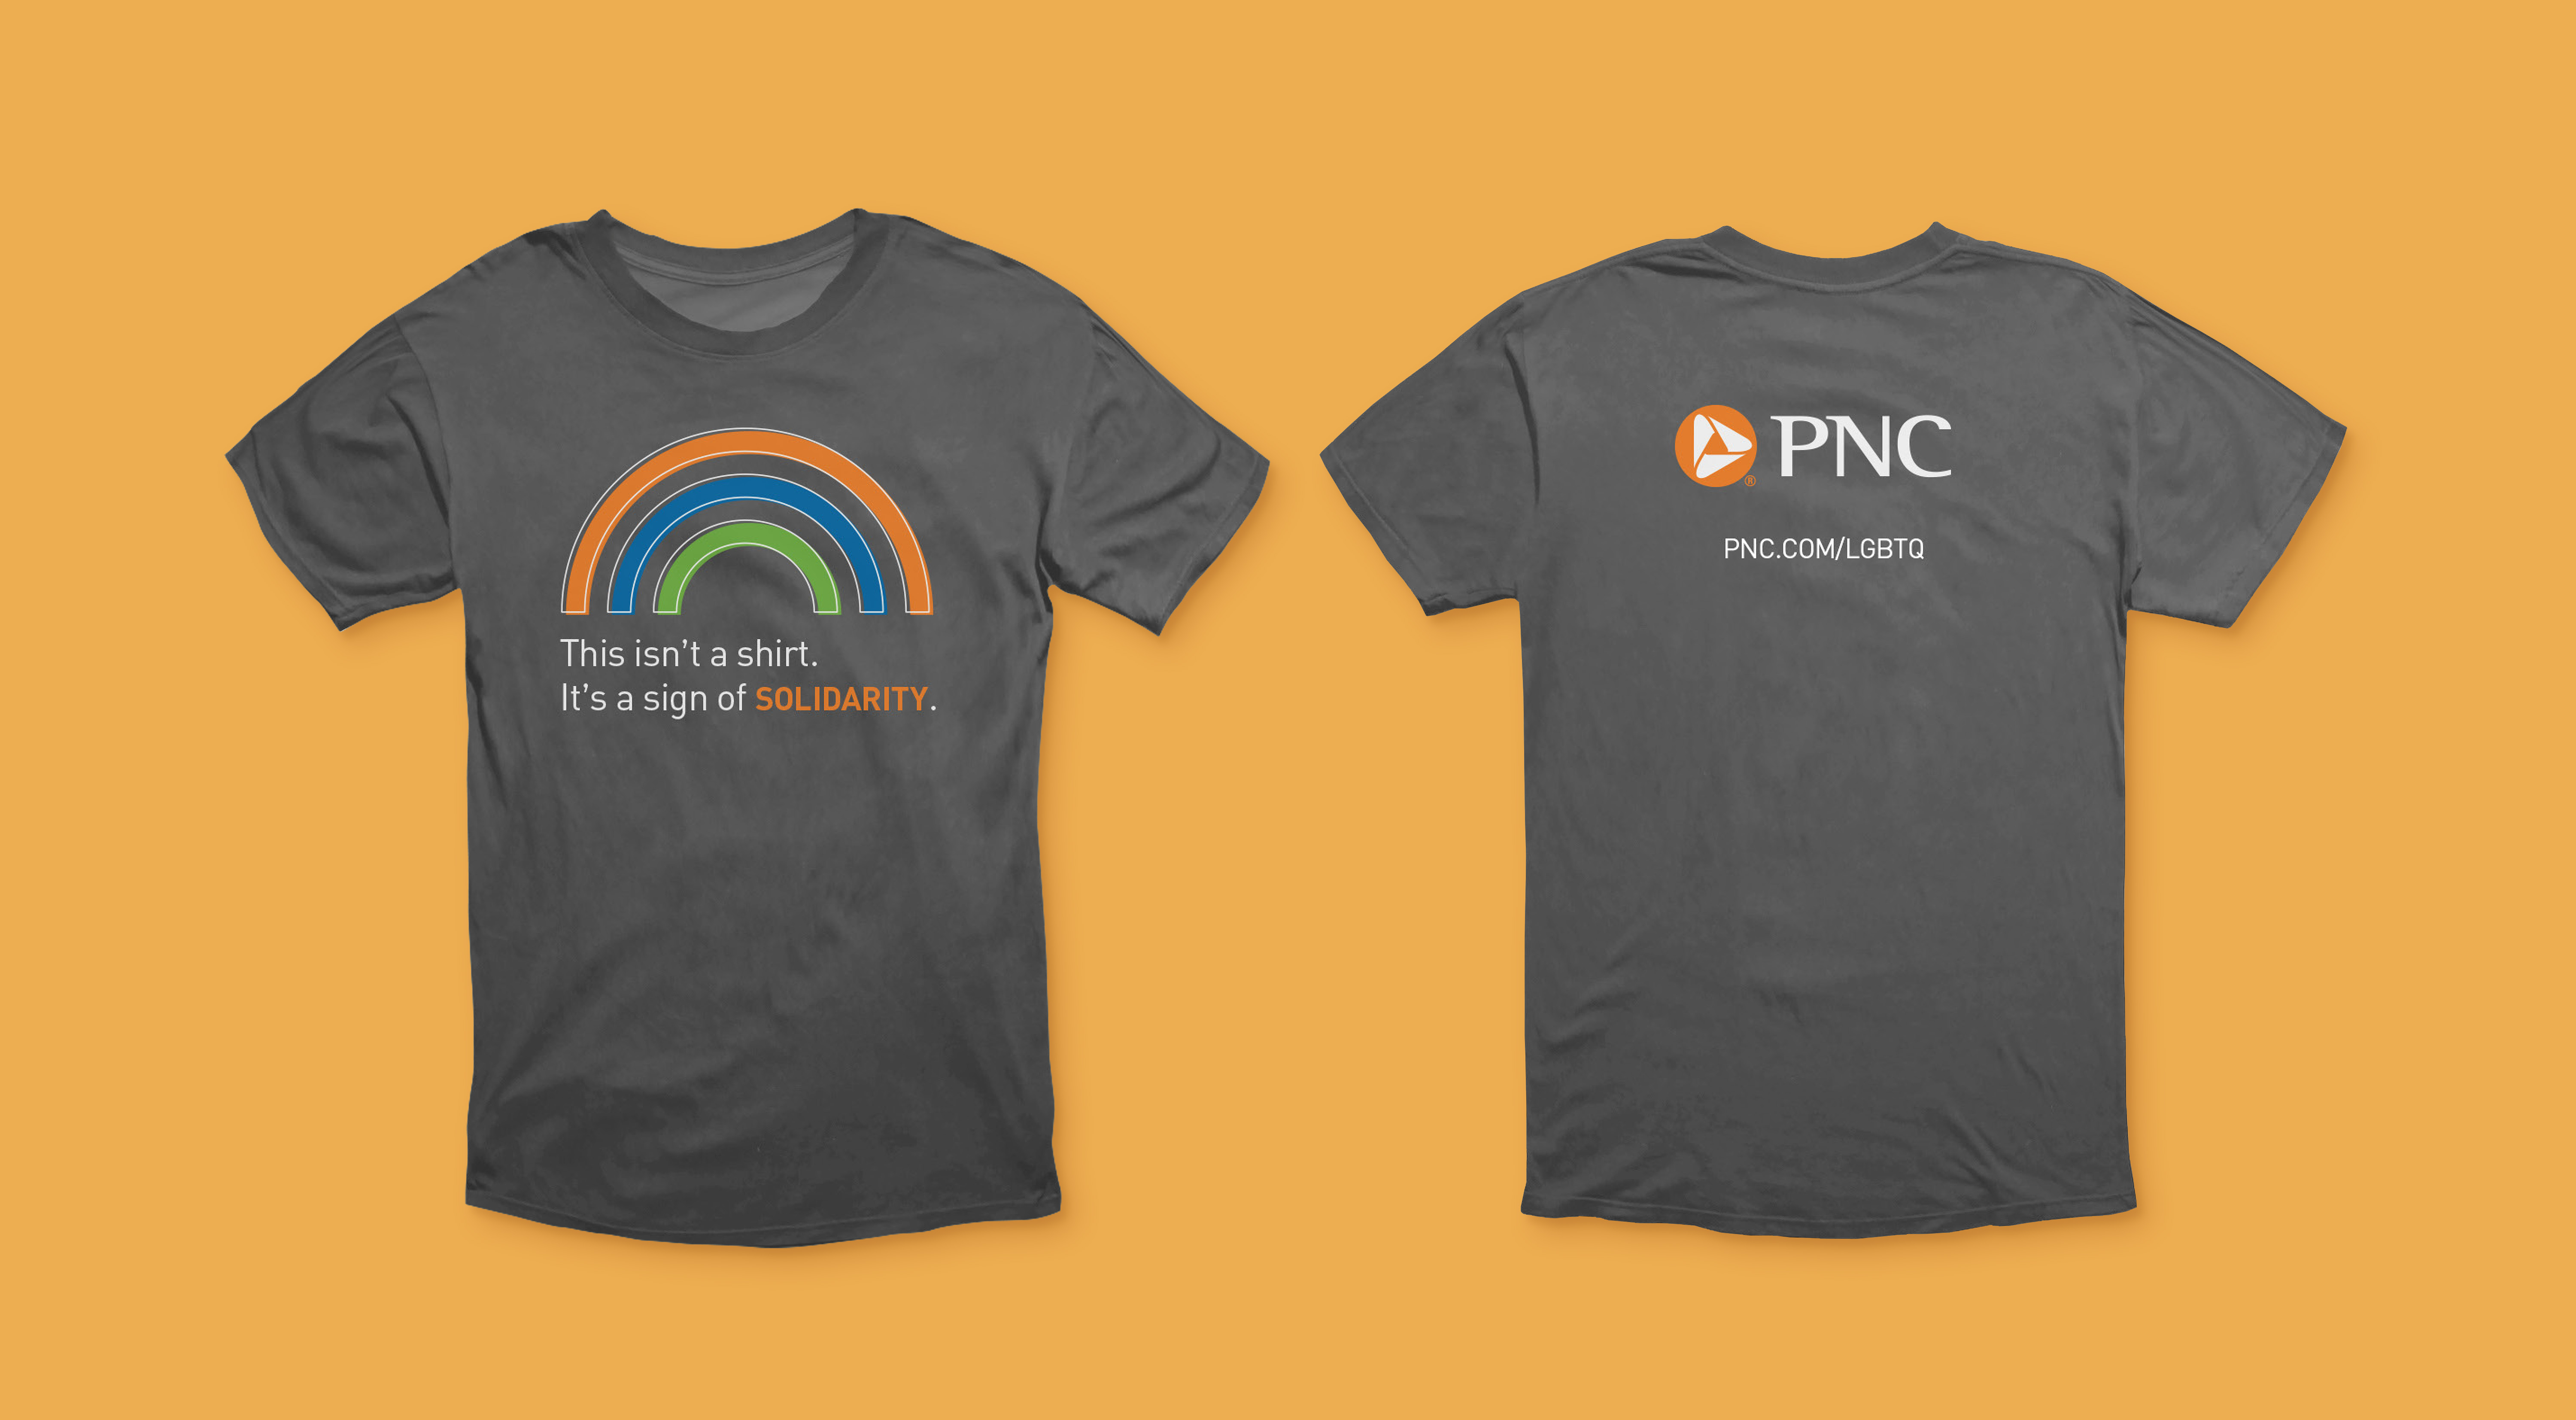 """A mockup of the front and back of a dark gray t-shirt over a mustard background. The front features an orange, blue, and green rainbow graphic and text that reads """"This is not a shirt. It's a sign of solidarity."""" The back features the PNC logo and a URL reading """"pnc.com/LGBTQ."""""""